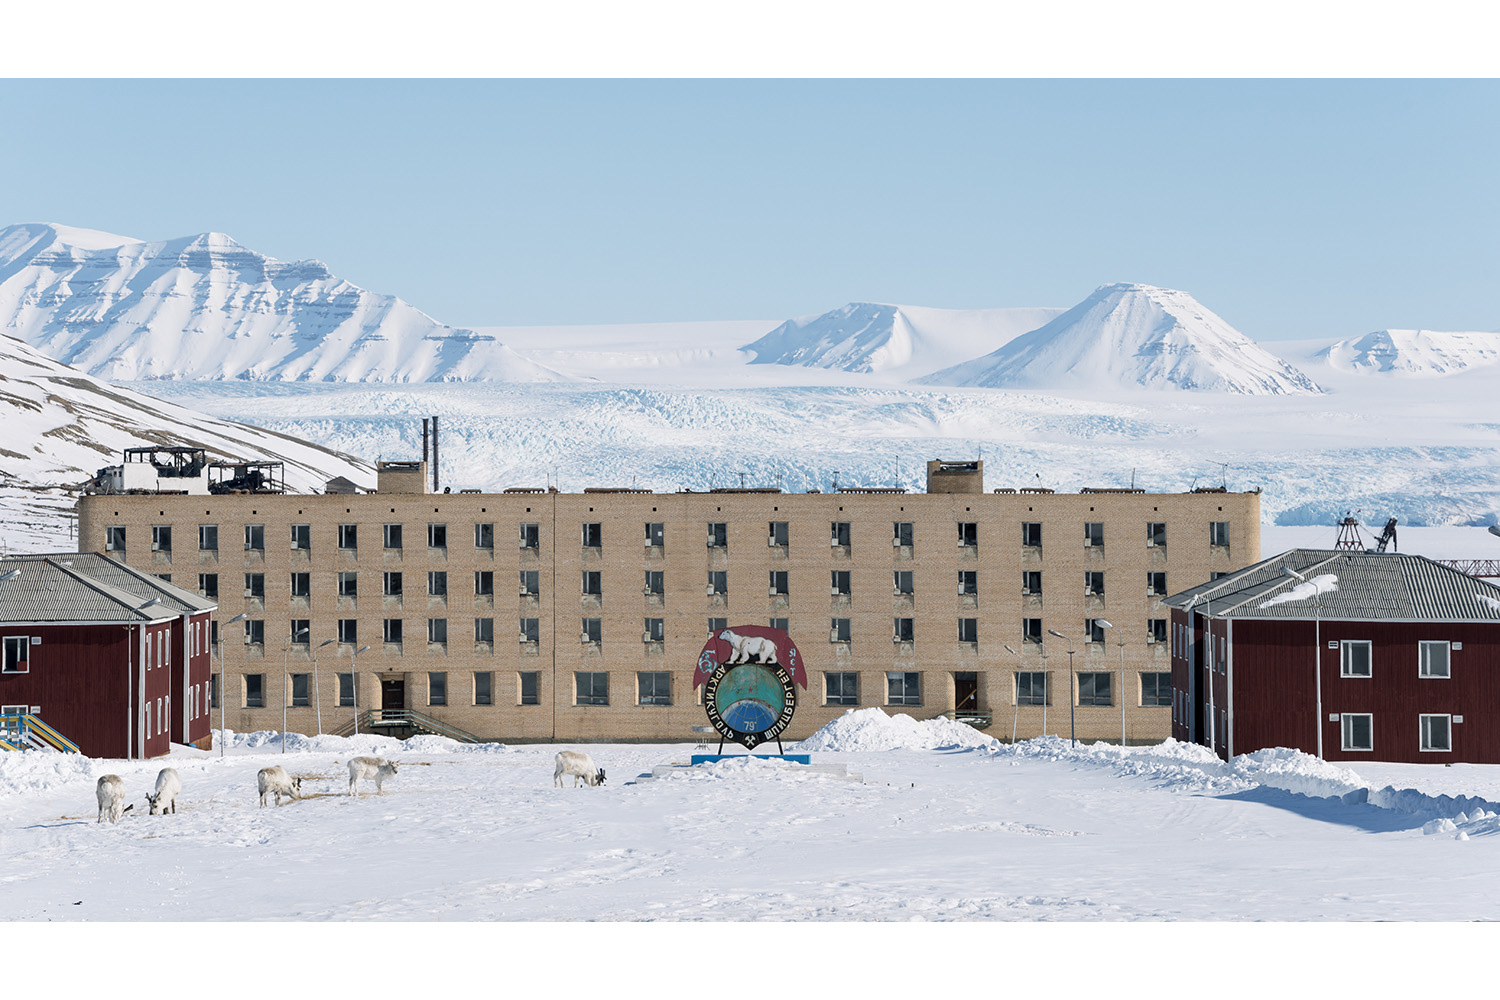 Pyramiden Ghost Town on Svalbard. Reindeer graze with Nordendkioldbreen Glacier in the background.Pyramiden is a Russian settlement and coal mining community on the archipelago of Svalbard, Norway. Founded by Sweden in 1910 and sold to the Soviet Union in 1927, Pyramiden was closed in 1998 and has since remained largely abandoned with most of its infrastructure and buildings still in place.